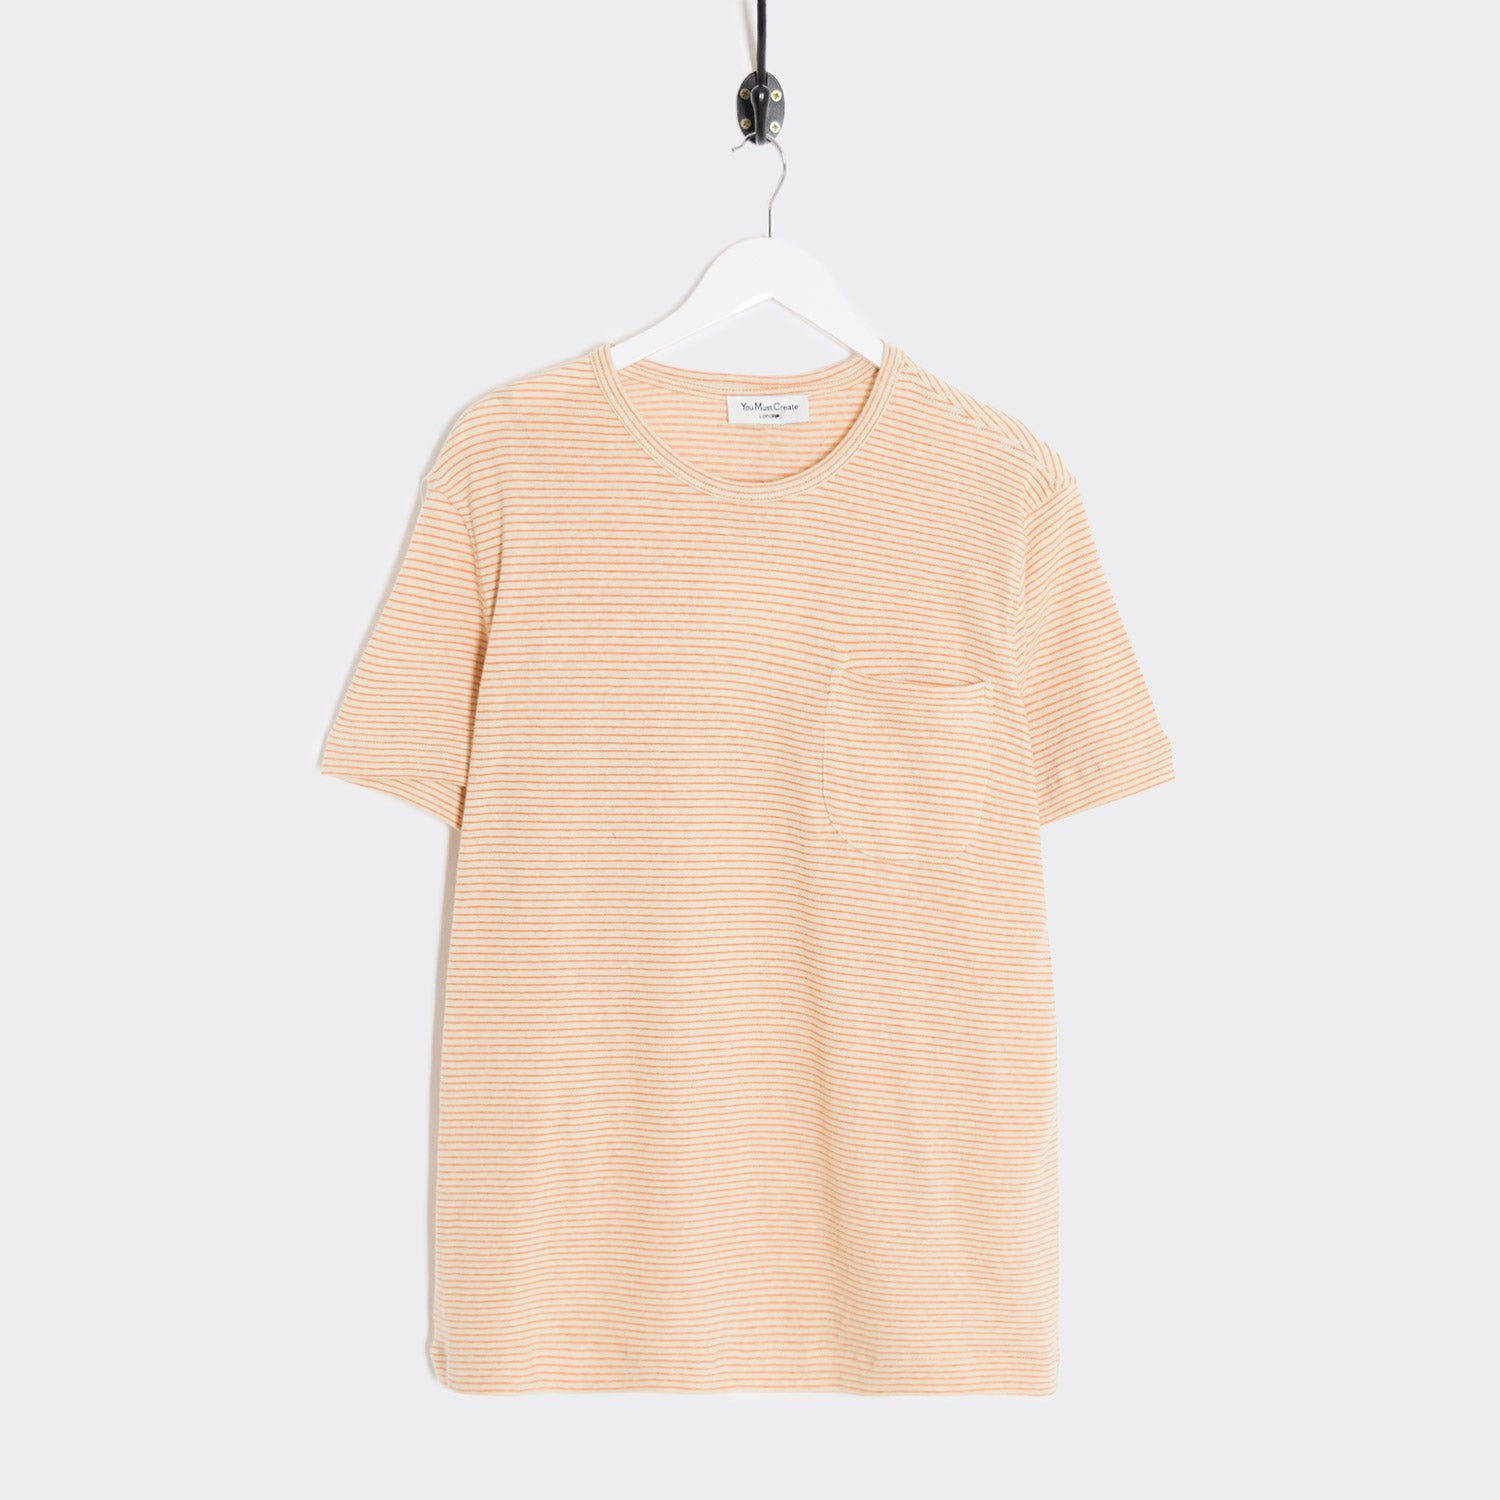 YMC Henri T-Shirt - Ecru/Orange